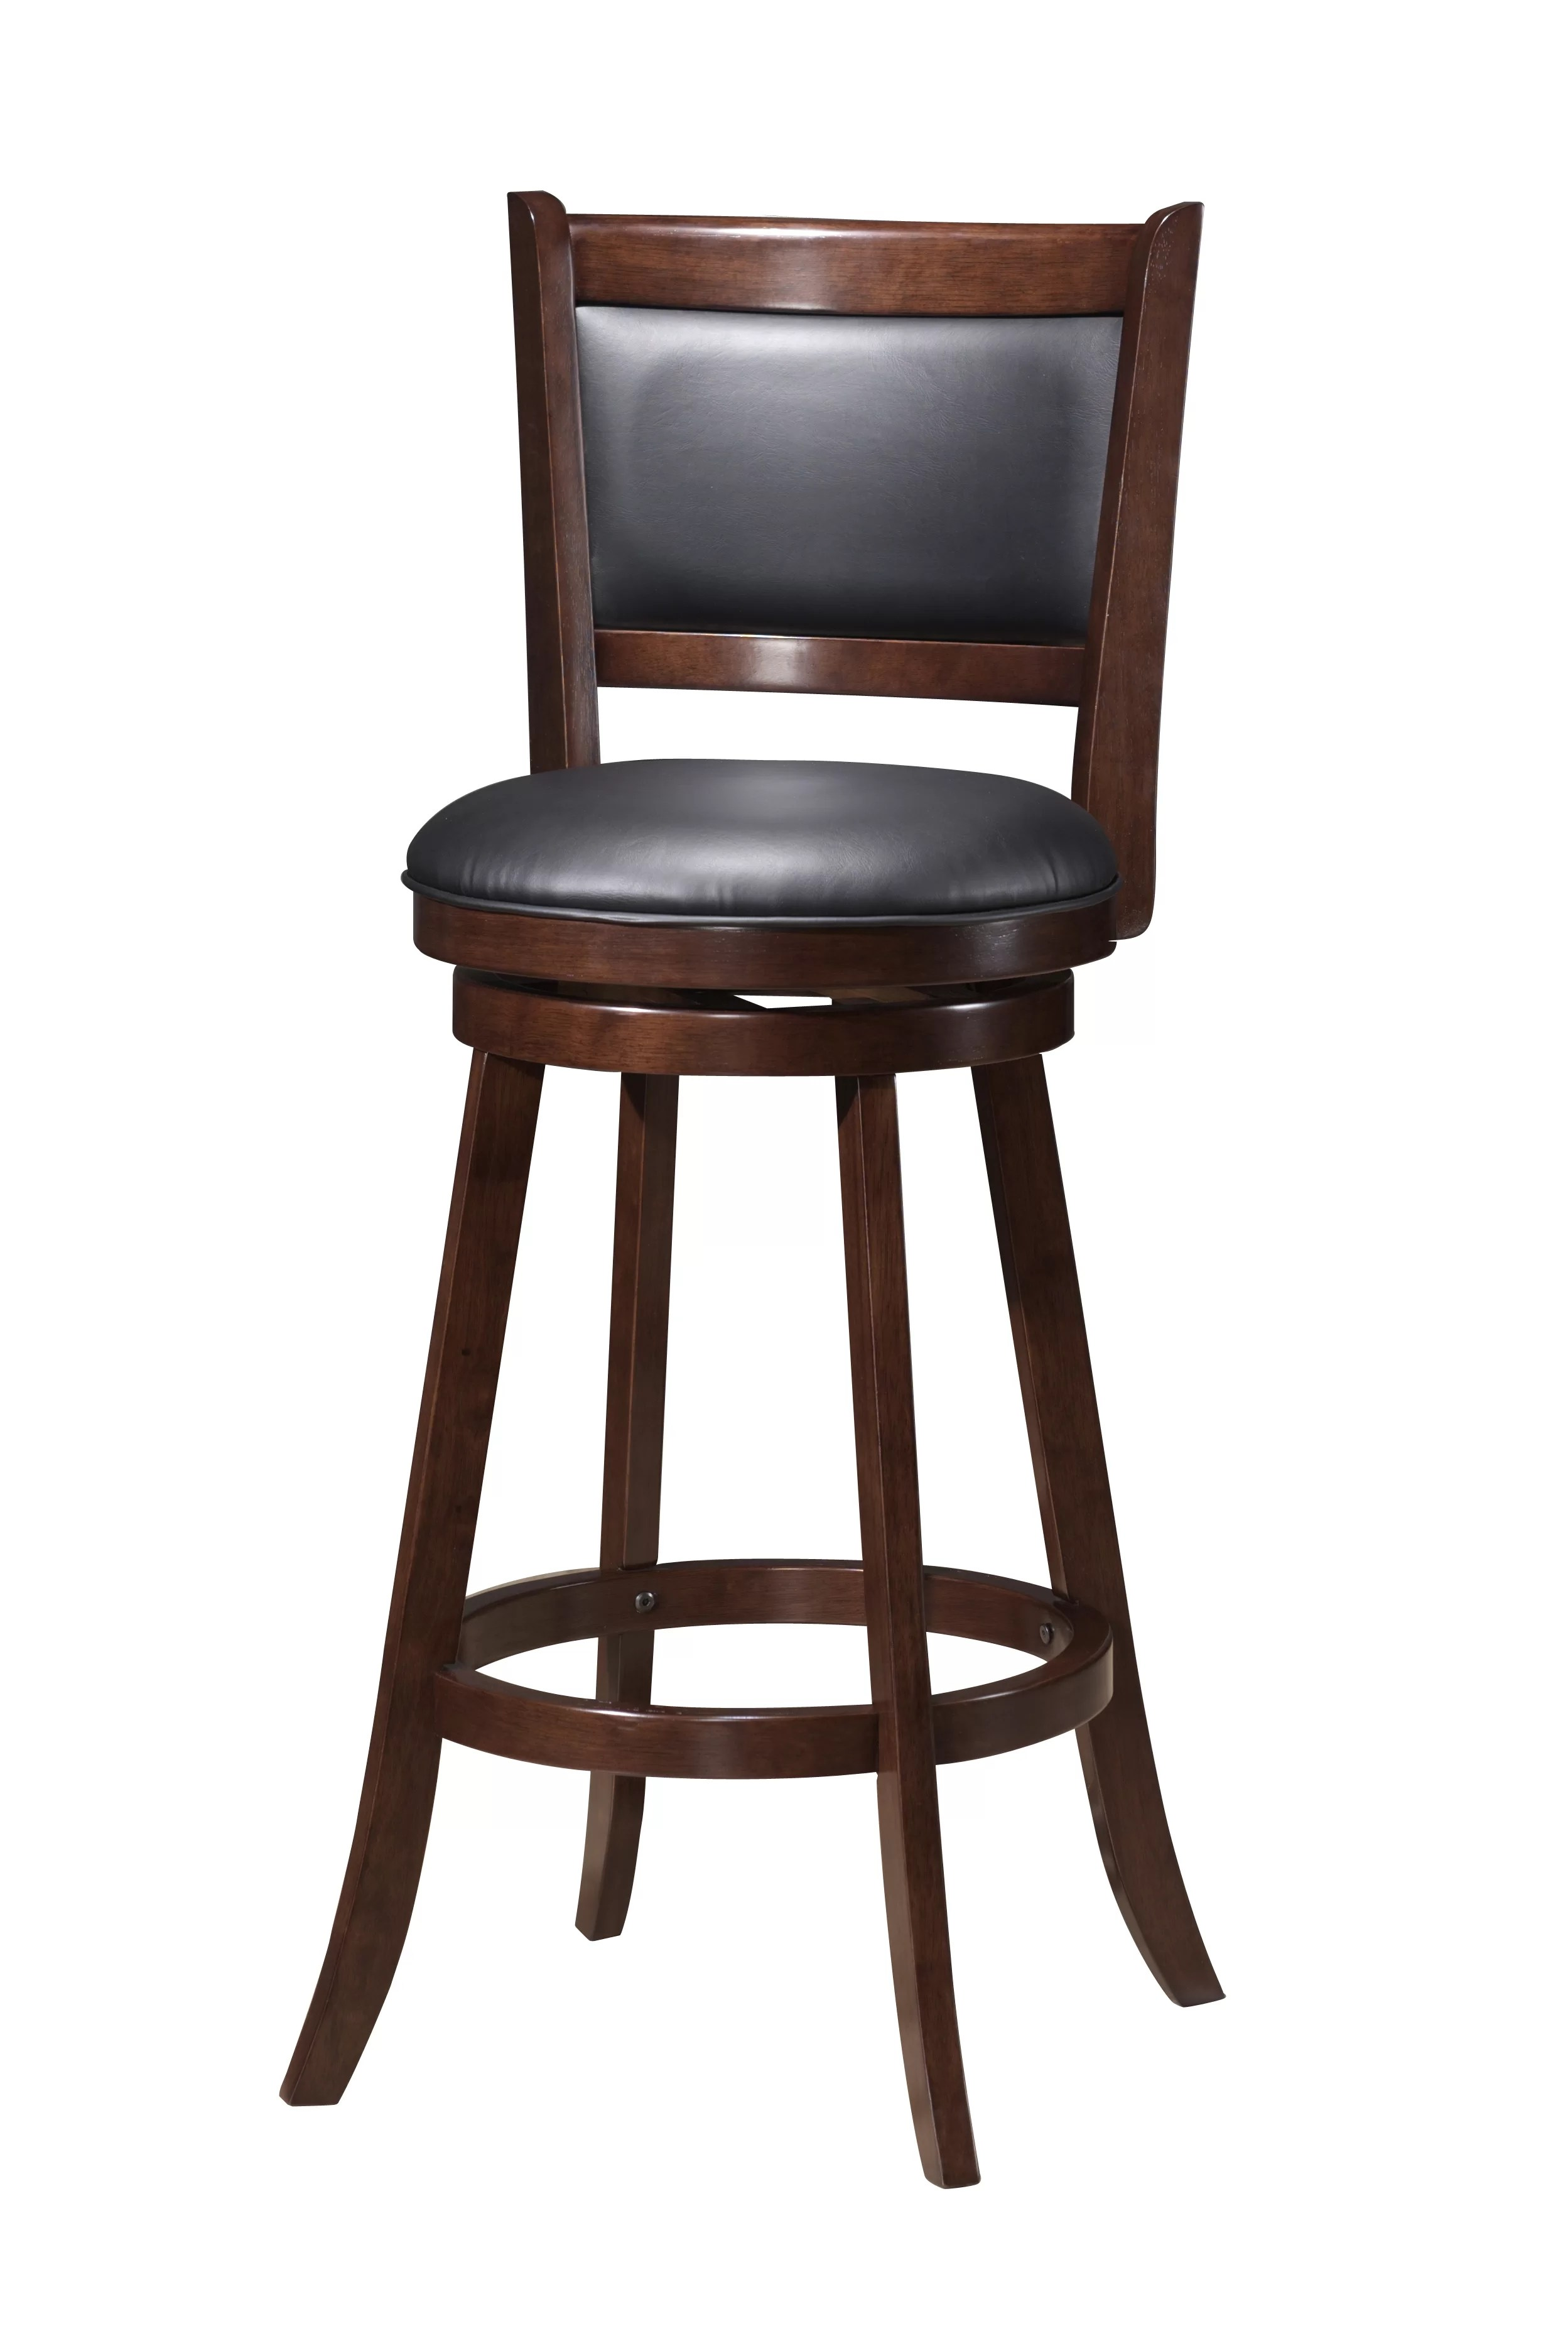 Wood Bar Chairs Tuthill Wooden Swivel Bar Stool